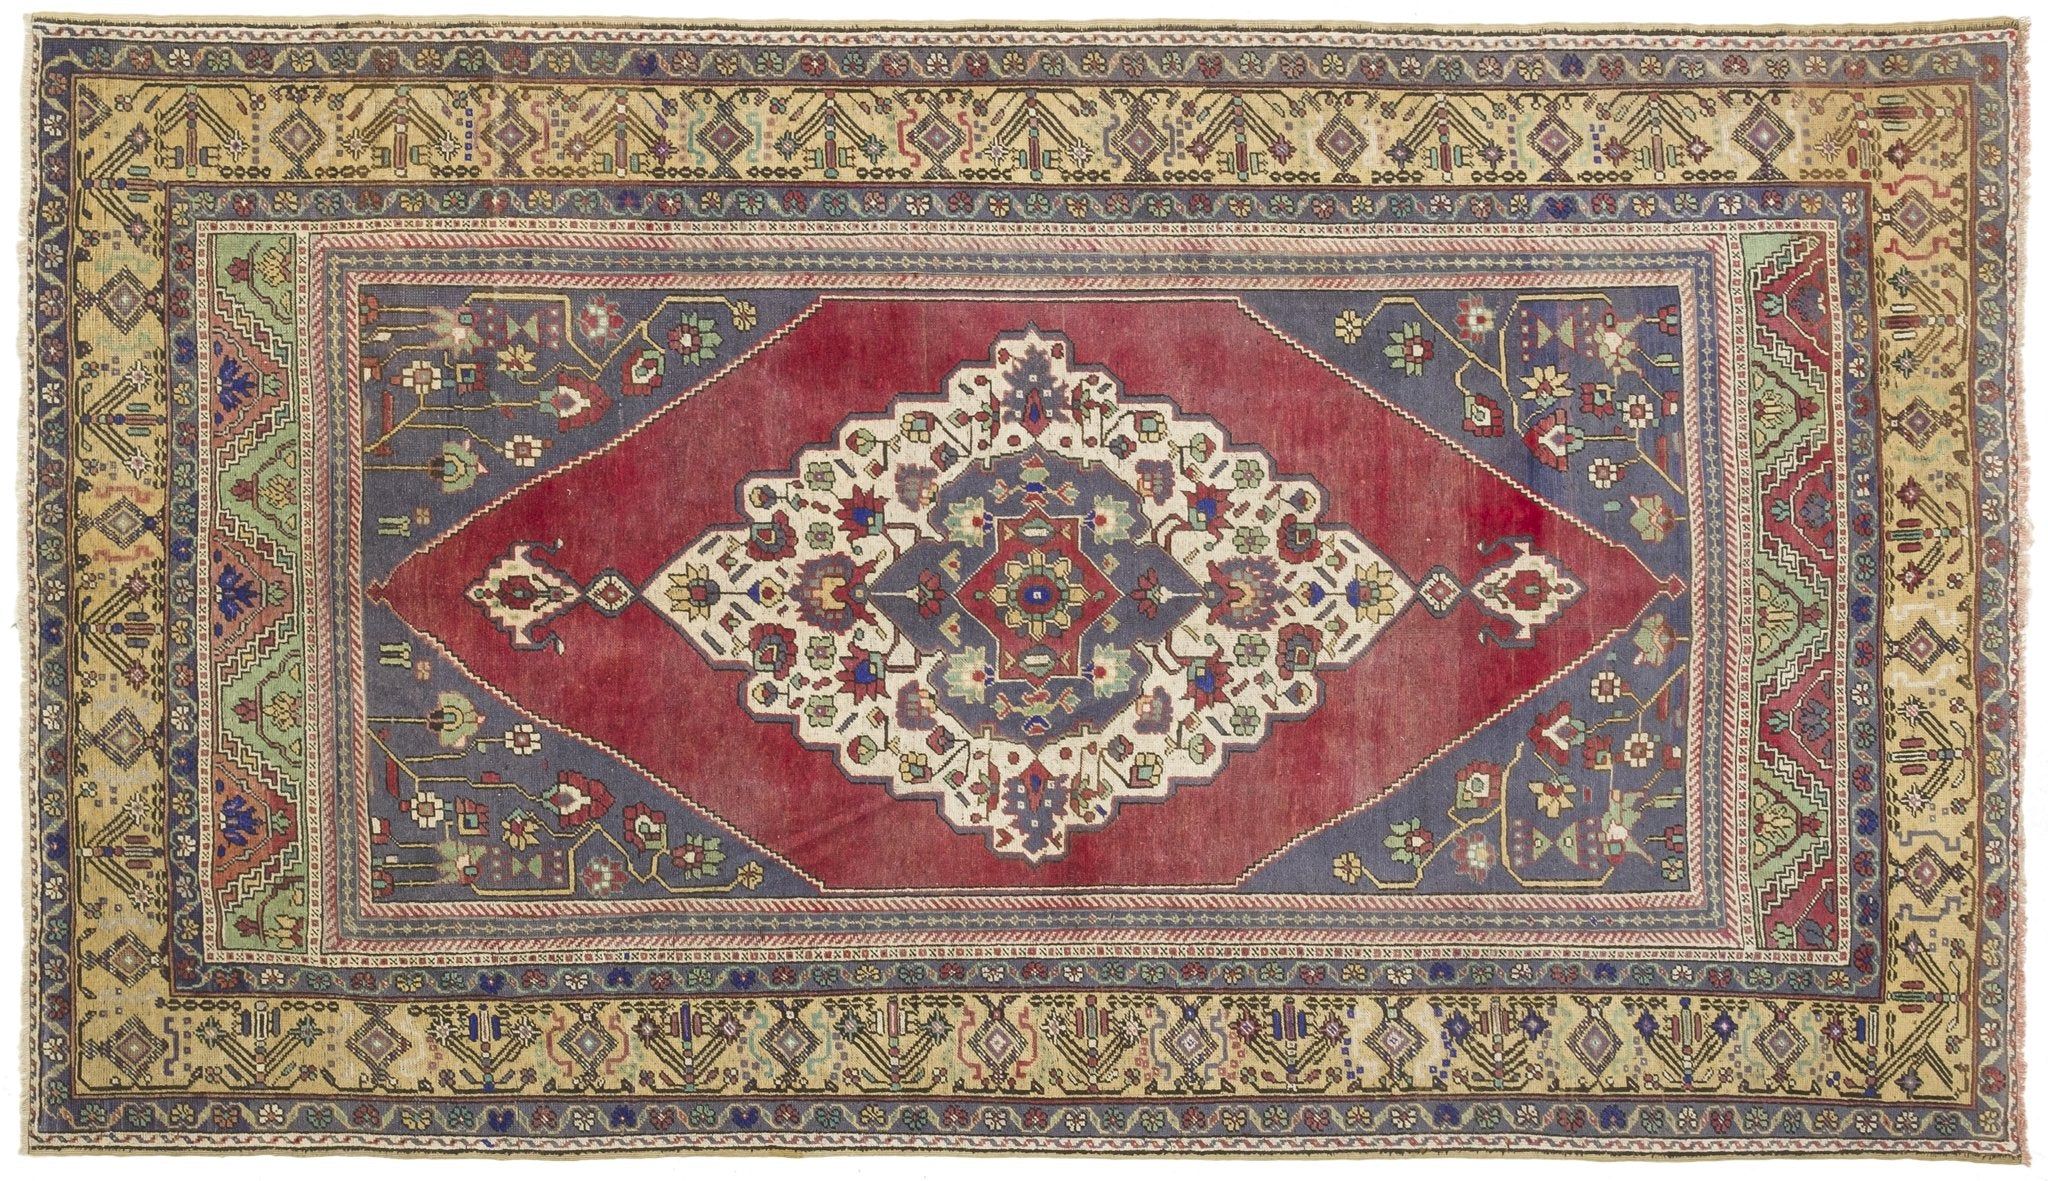 Vintage Turkish Rug Hildtraud